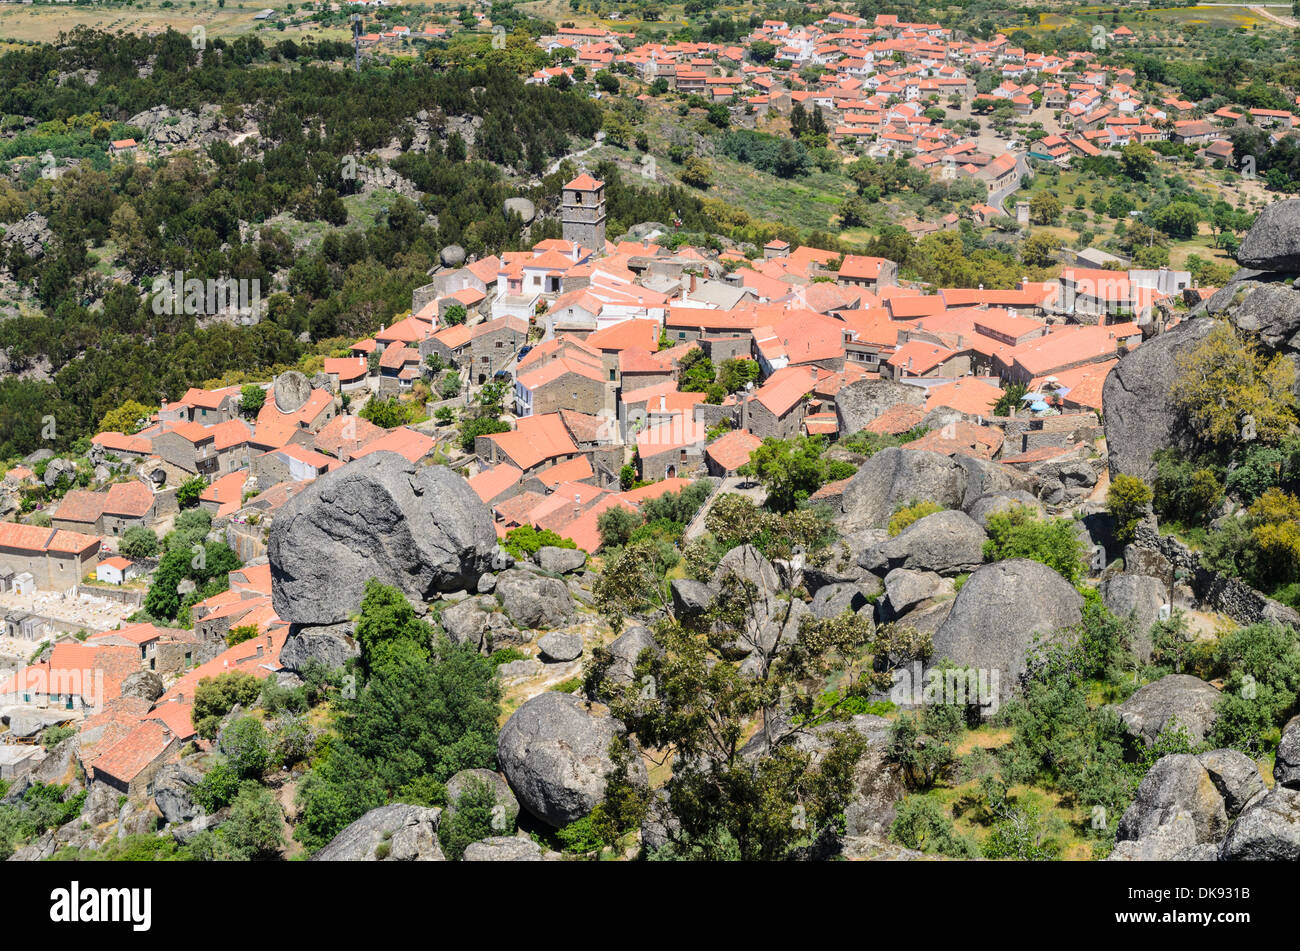 The red roofed medieval village of Monsanto with its large granite boulders, Portugal - Stock Image